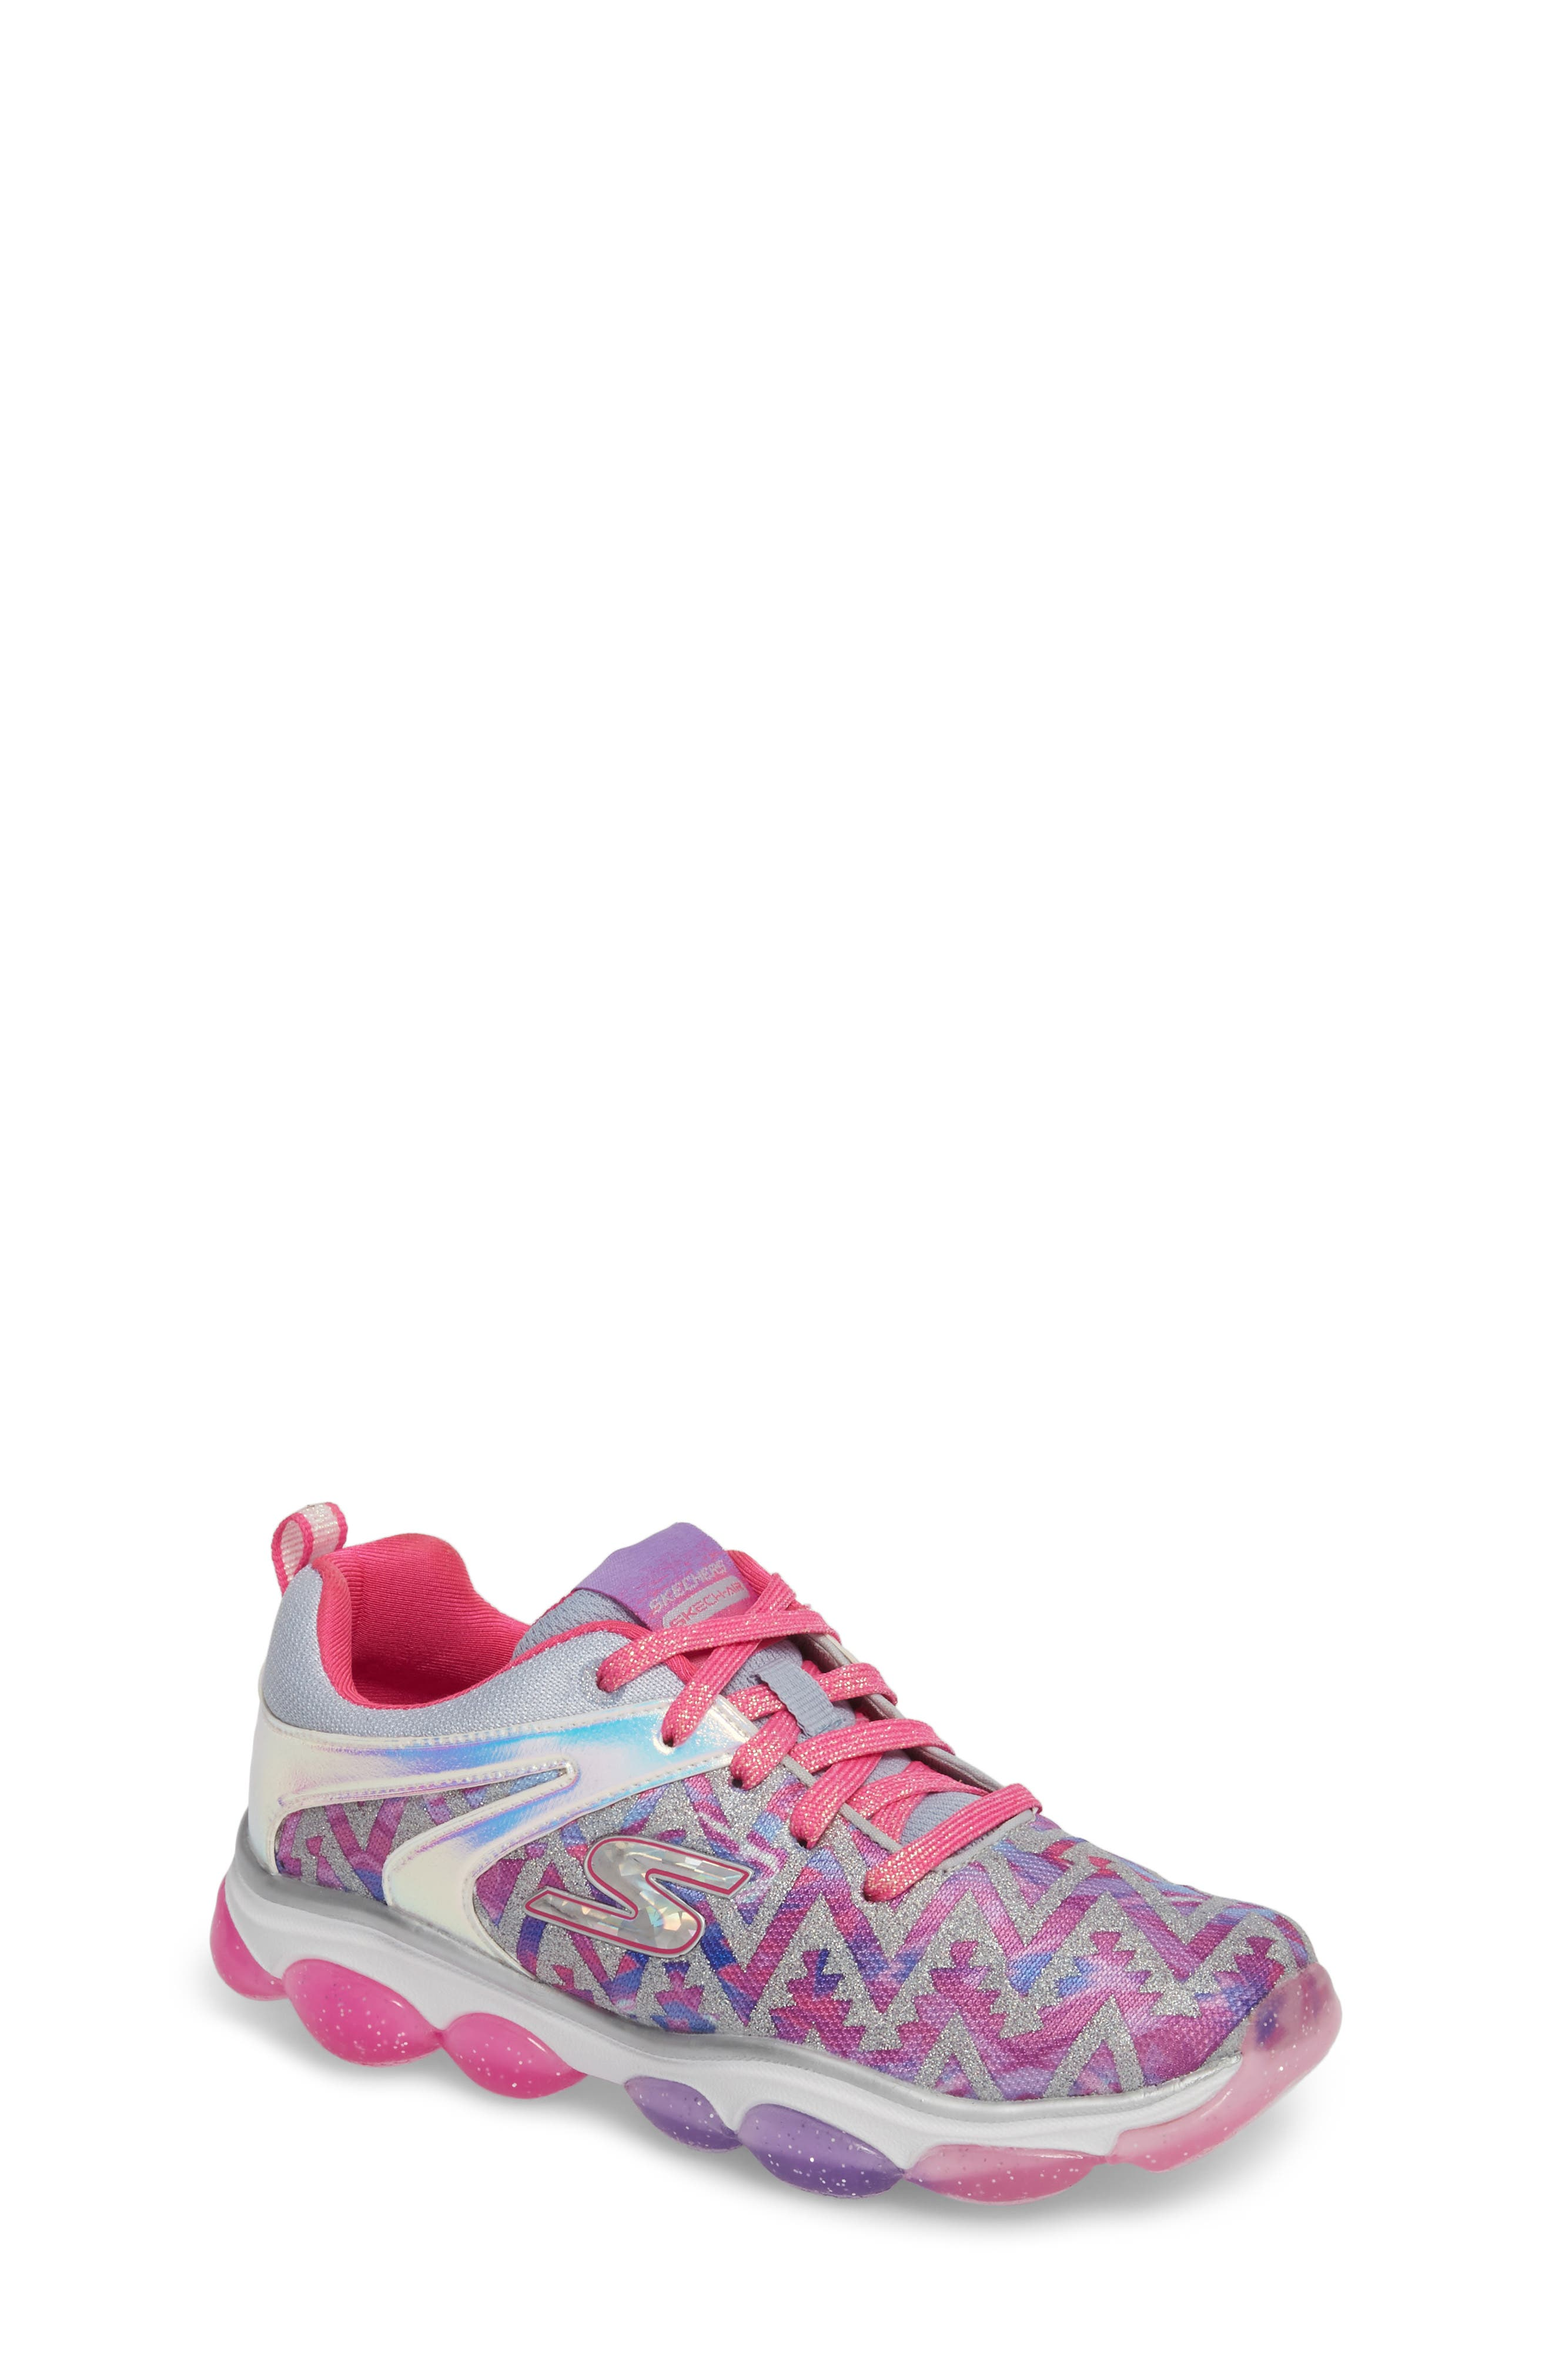 Skech Air Groove Sneaker,                             Main thumbnail 1, color,                             Pink/ Multi